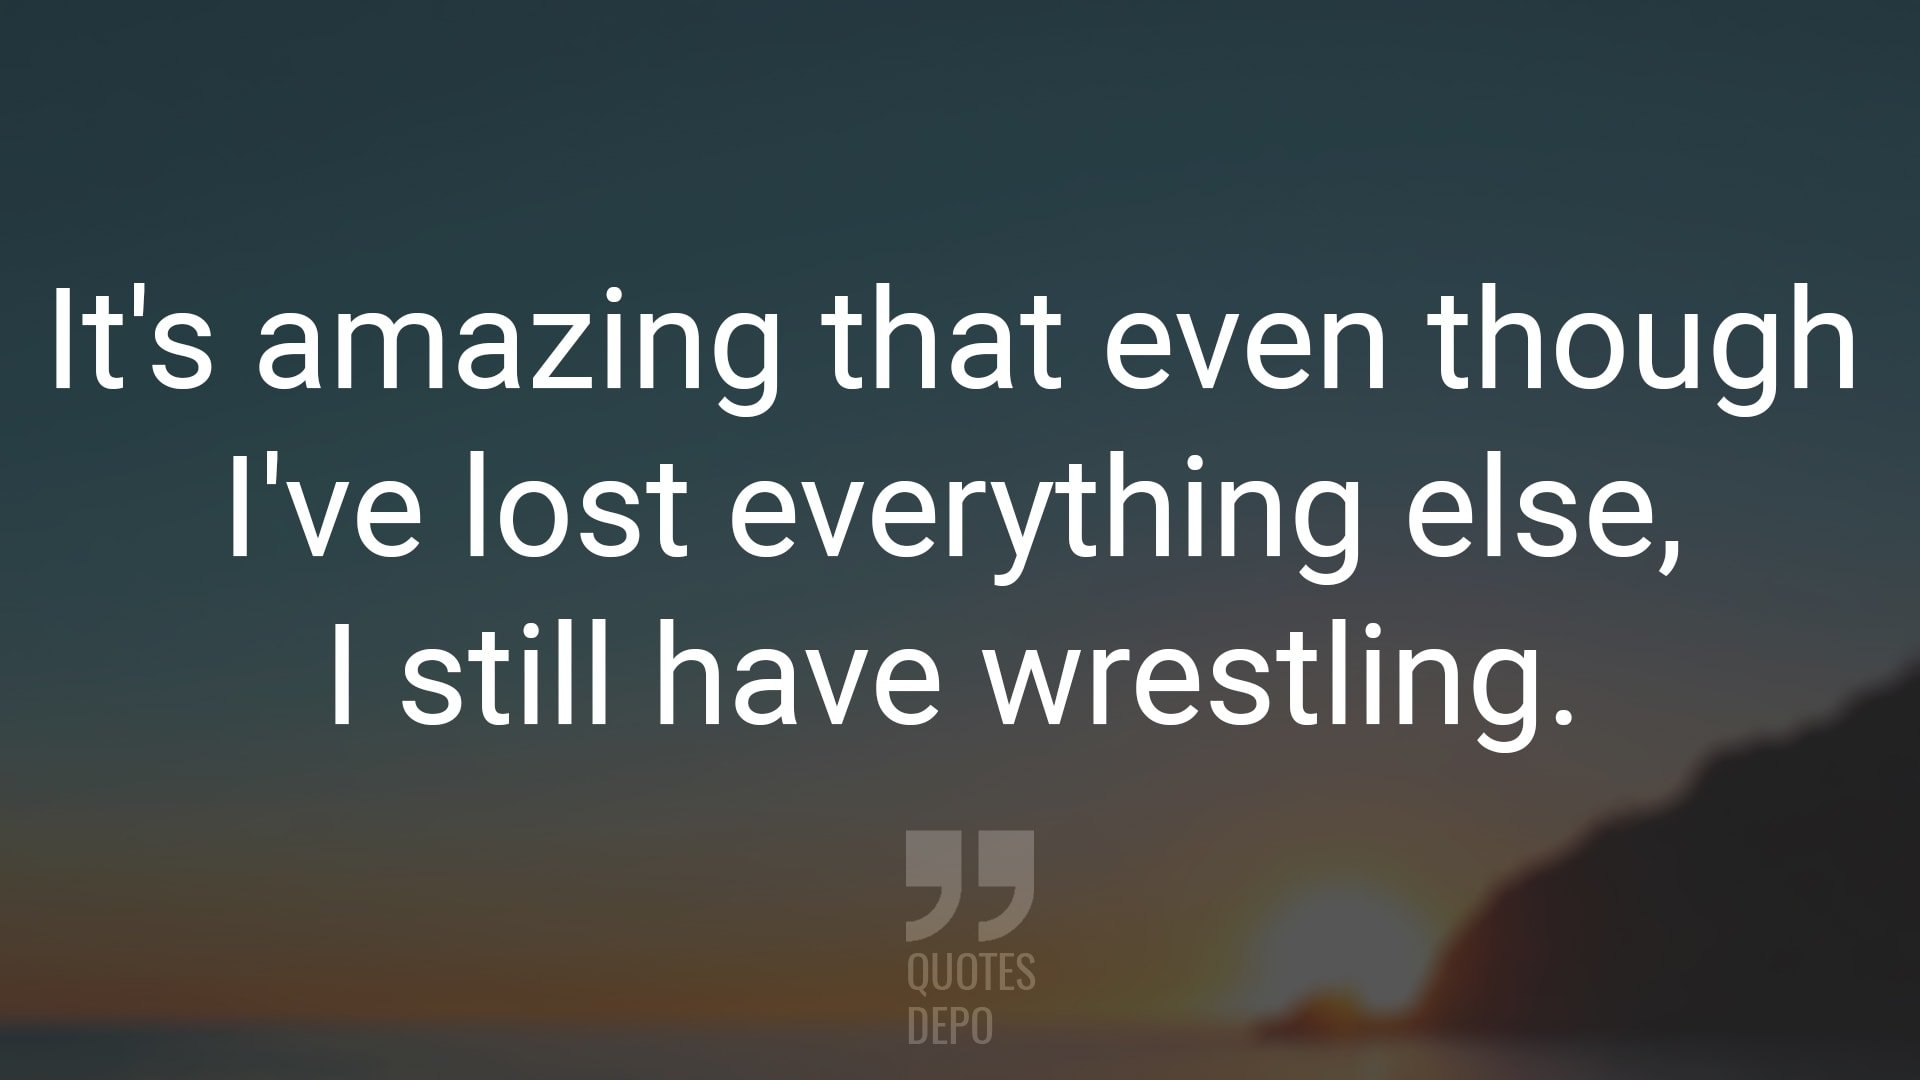 It's Amazing that Even Though I've Lost